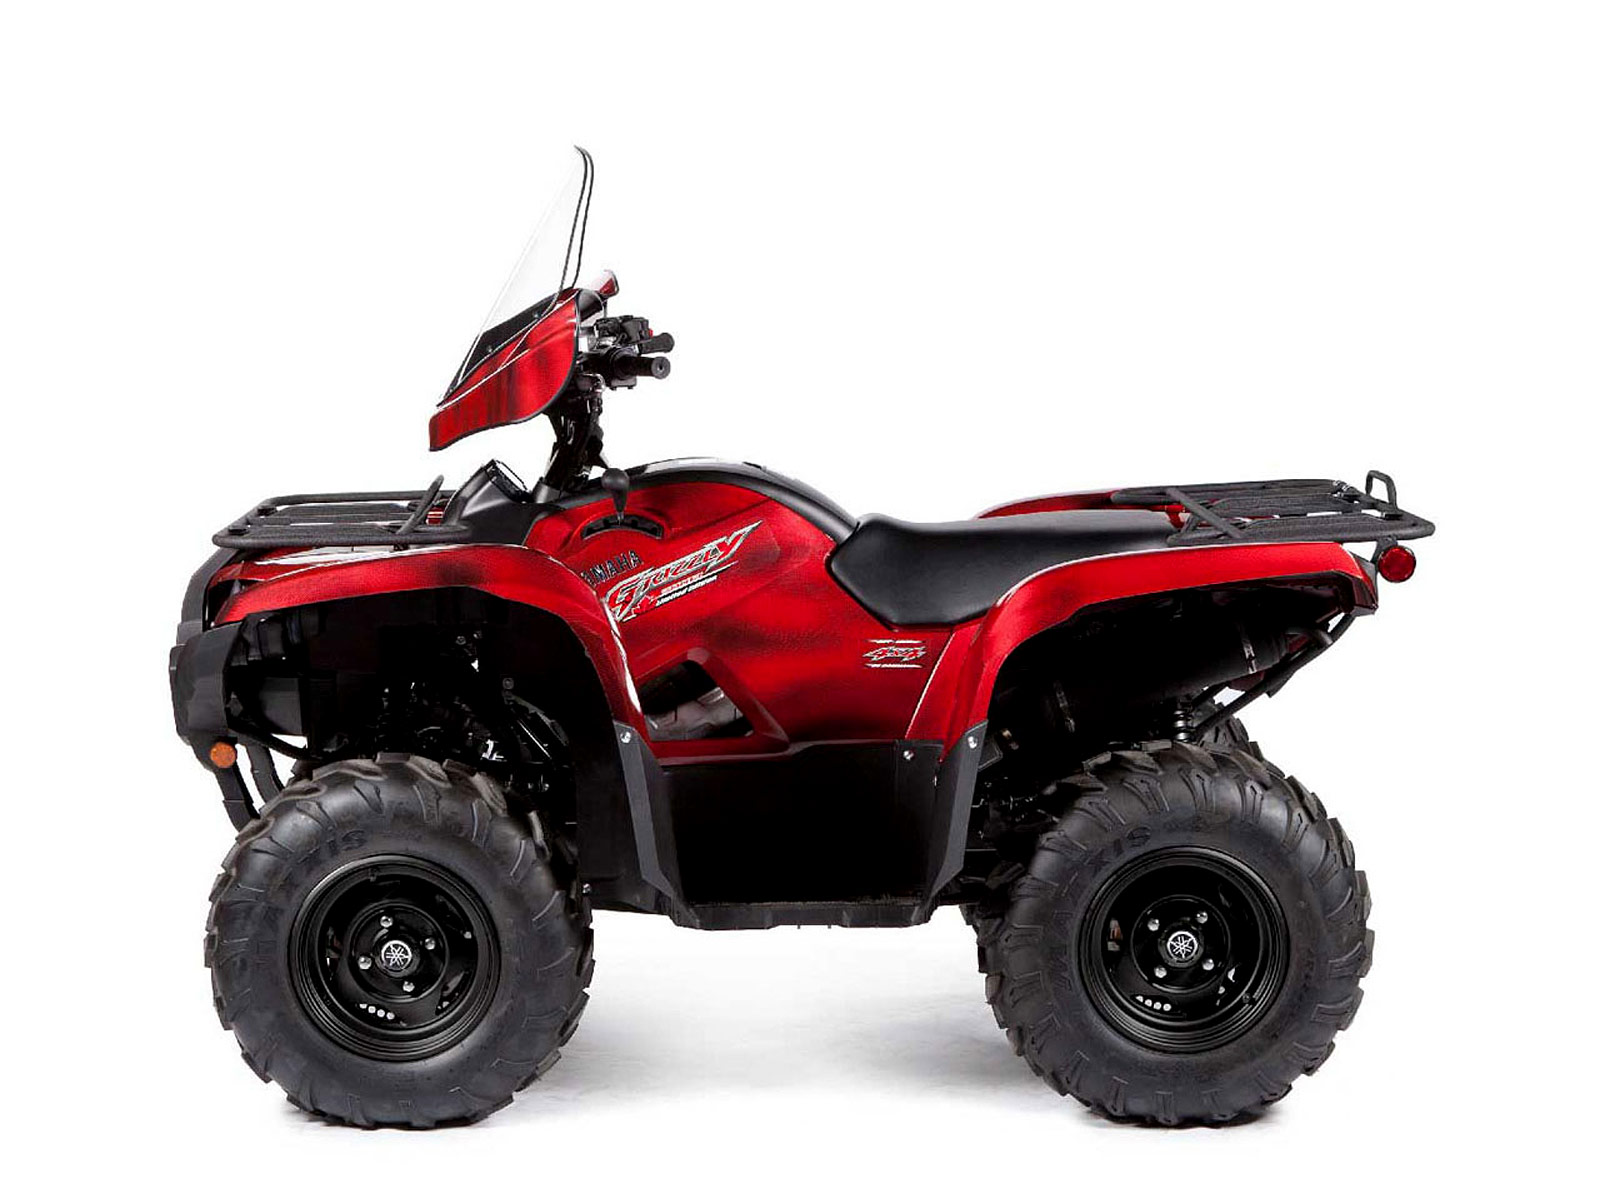 2013 yamaha grizzly 550 fi auto 4x4 eps le canada specs for Yamaha clp 550 specifications